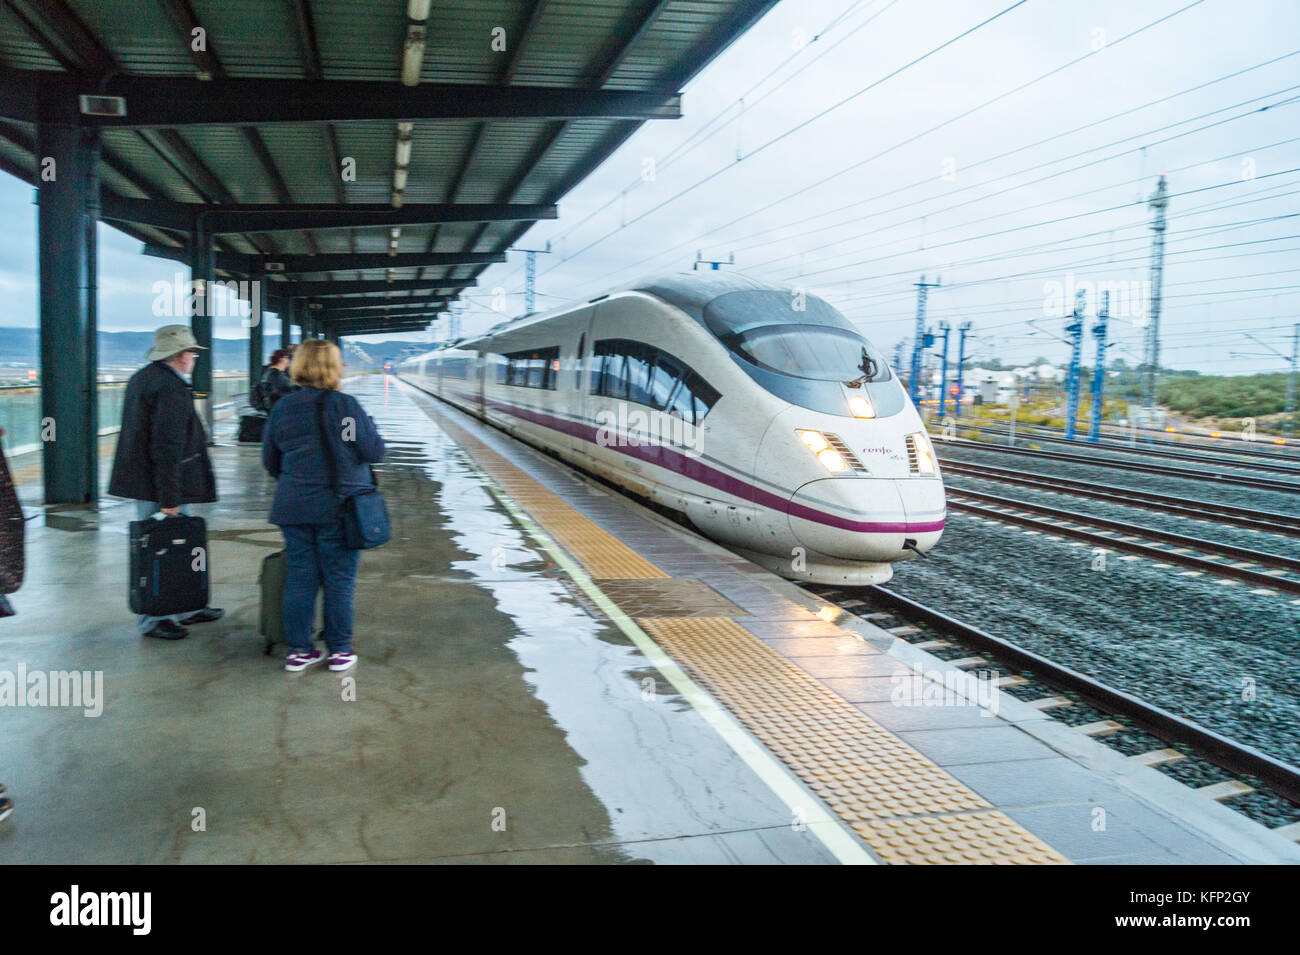 spanish-ave-high-speed-train-operated-by-renfe-arriving-at-antequera-KFP2GY.jpg